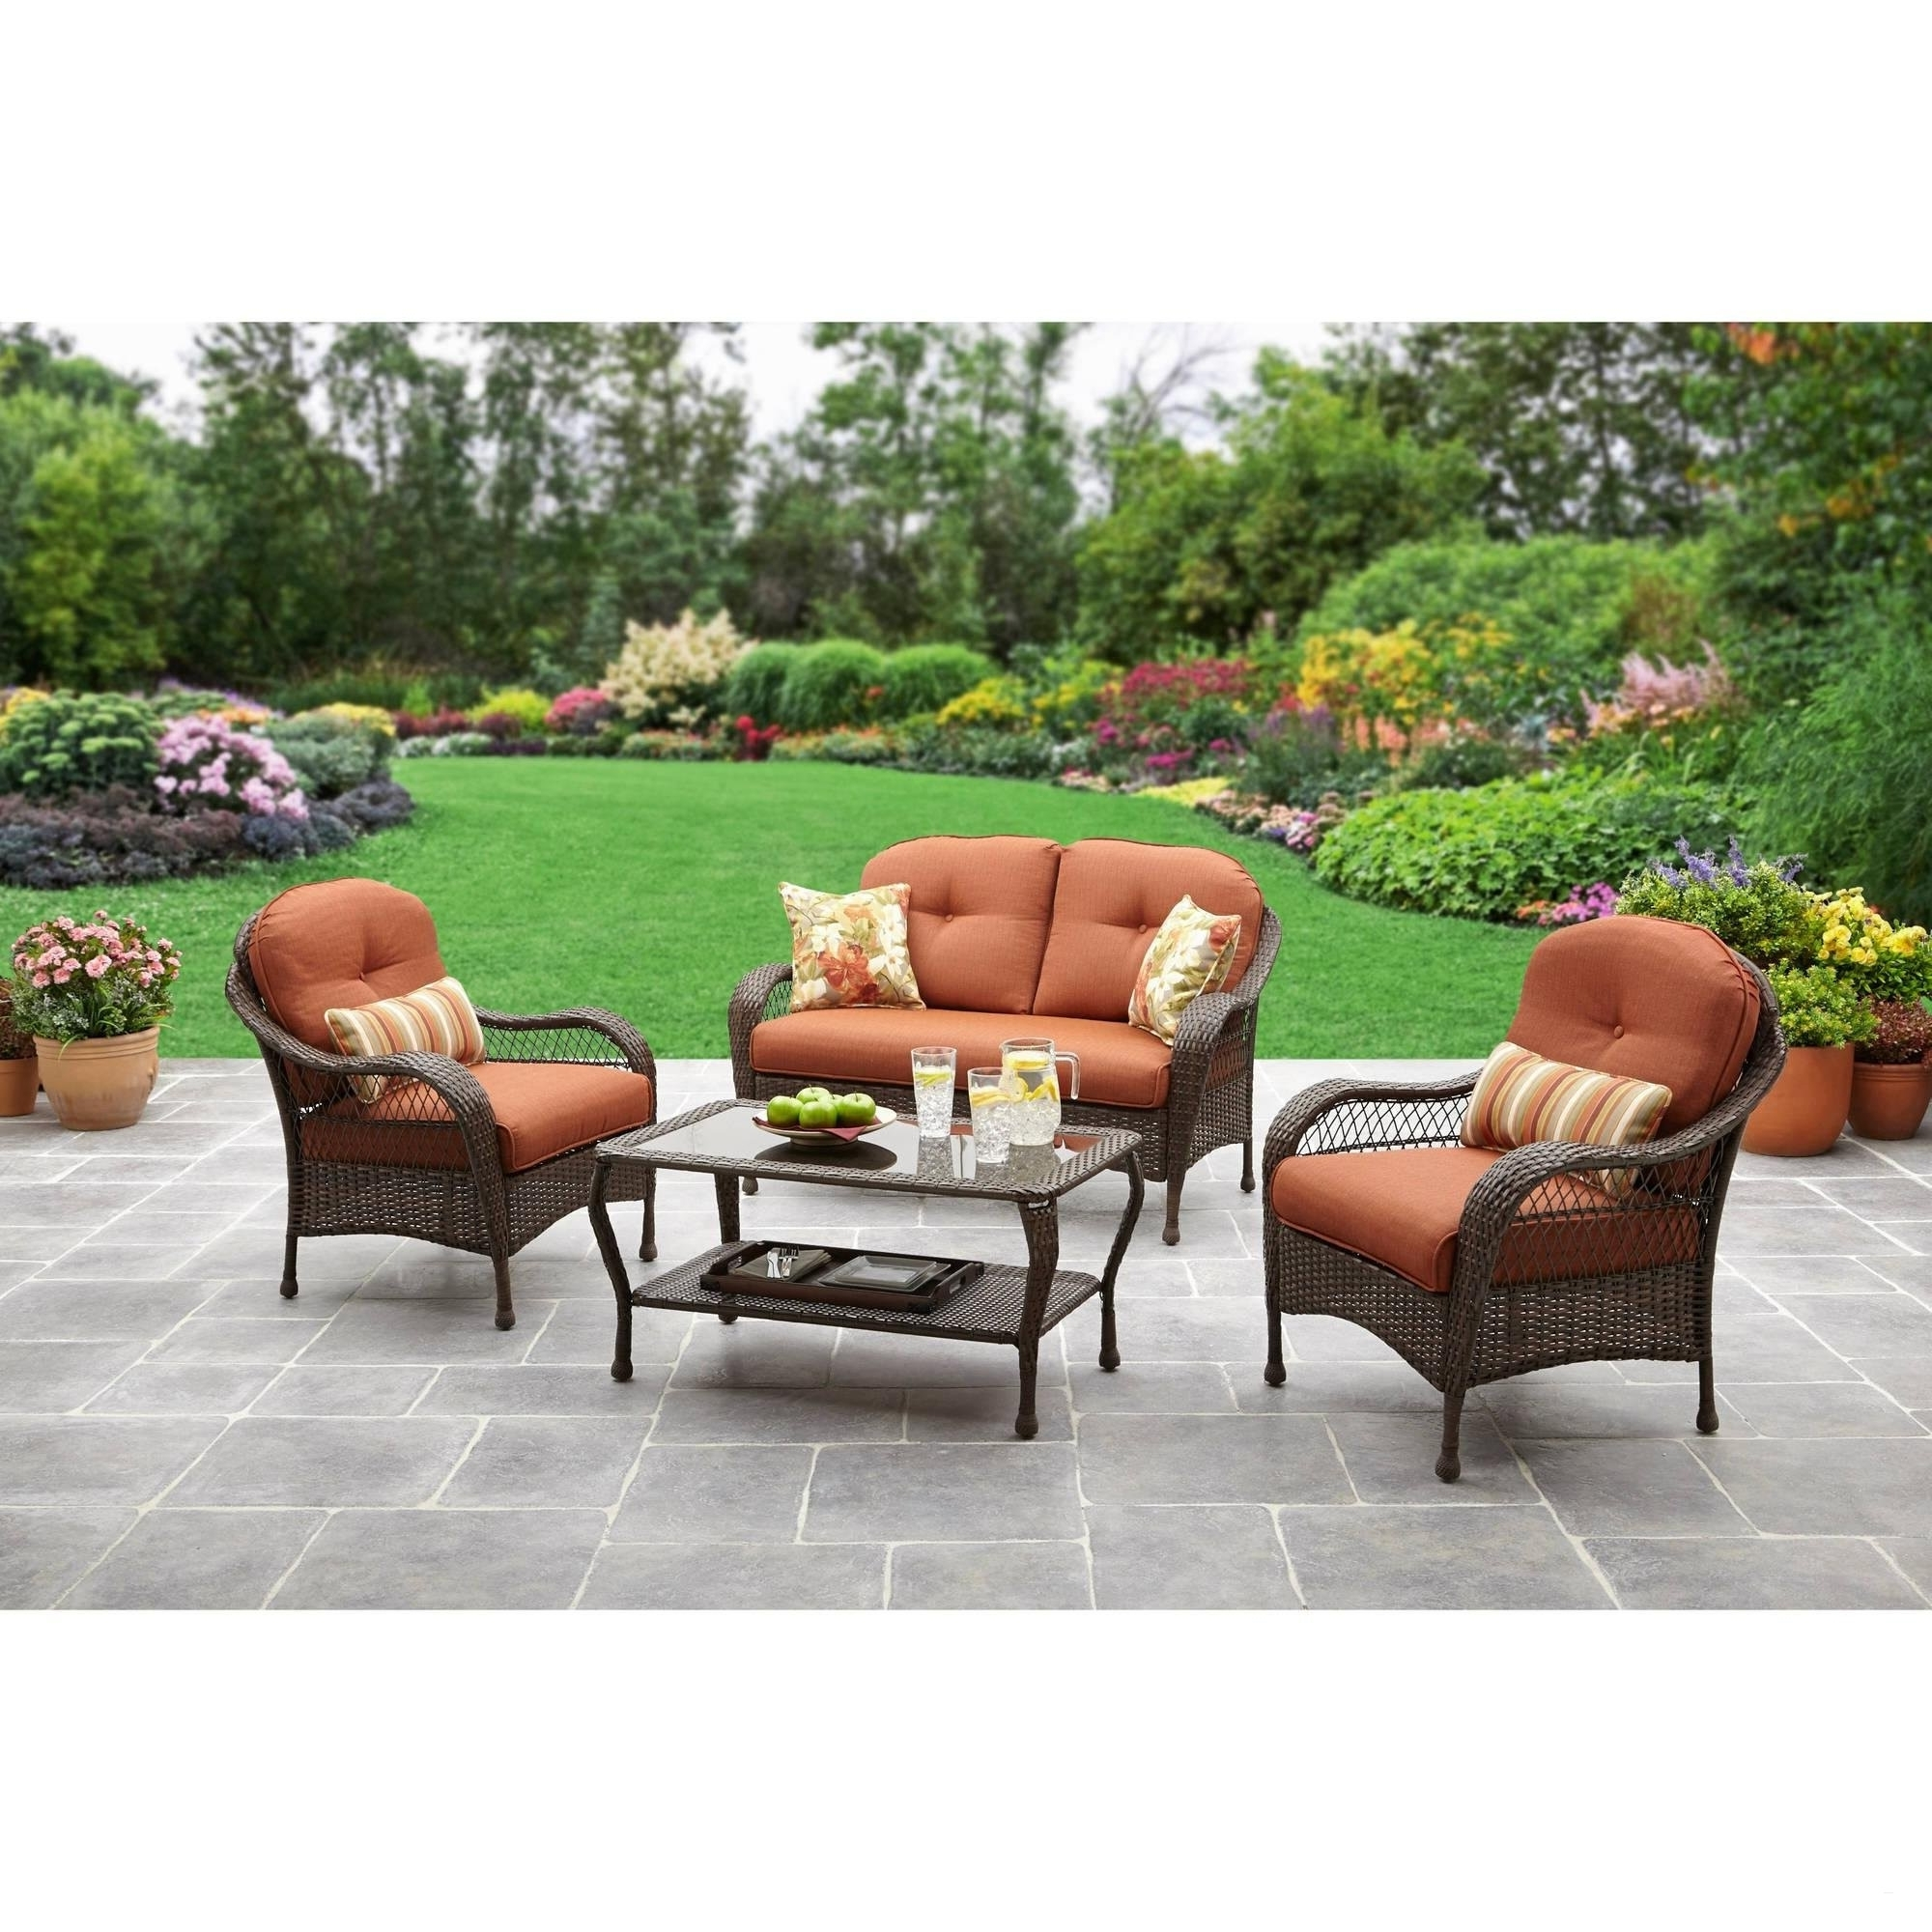 Fashionable Home Depot Patio Furniture Amazon Outdoor Furniture Patio Furniture Intended For Amazon Patio Furniture Conversation Sets (View 8 of 15)